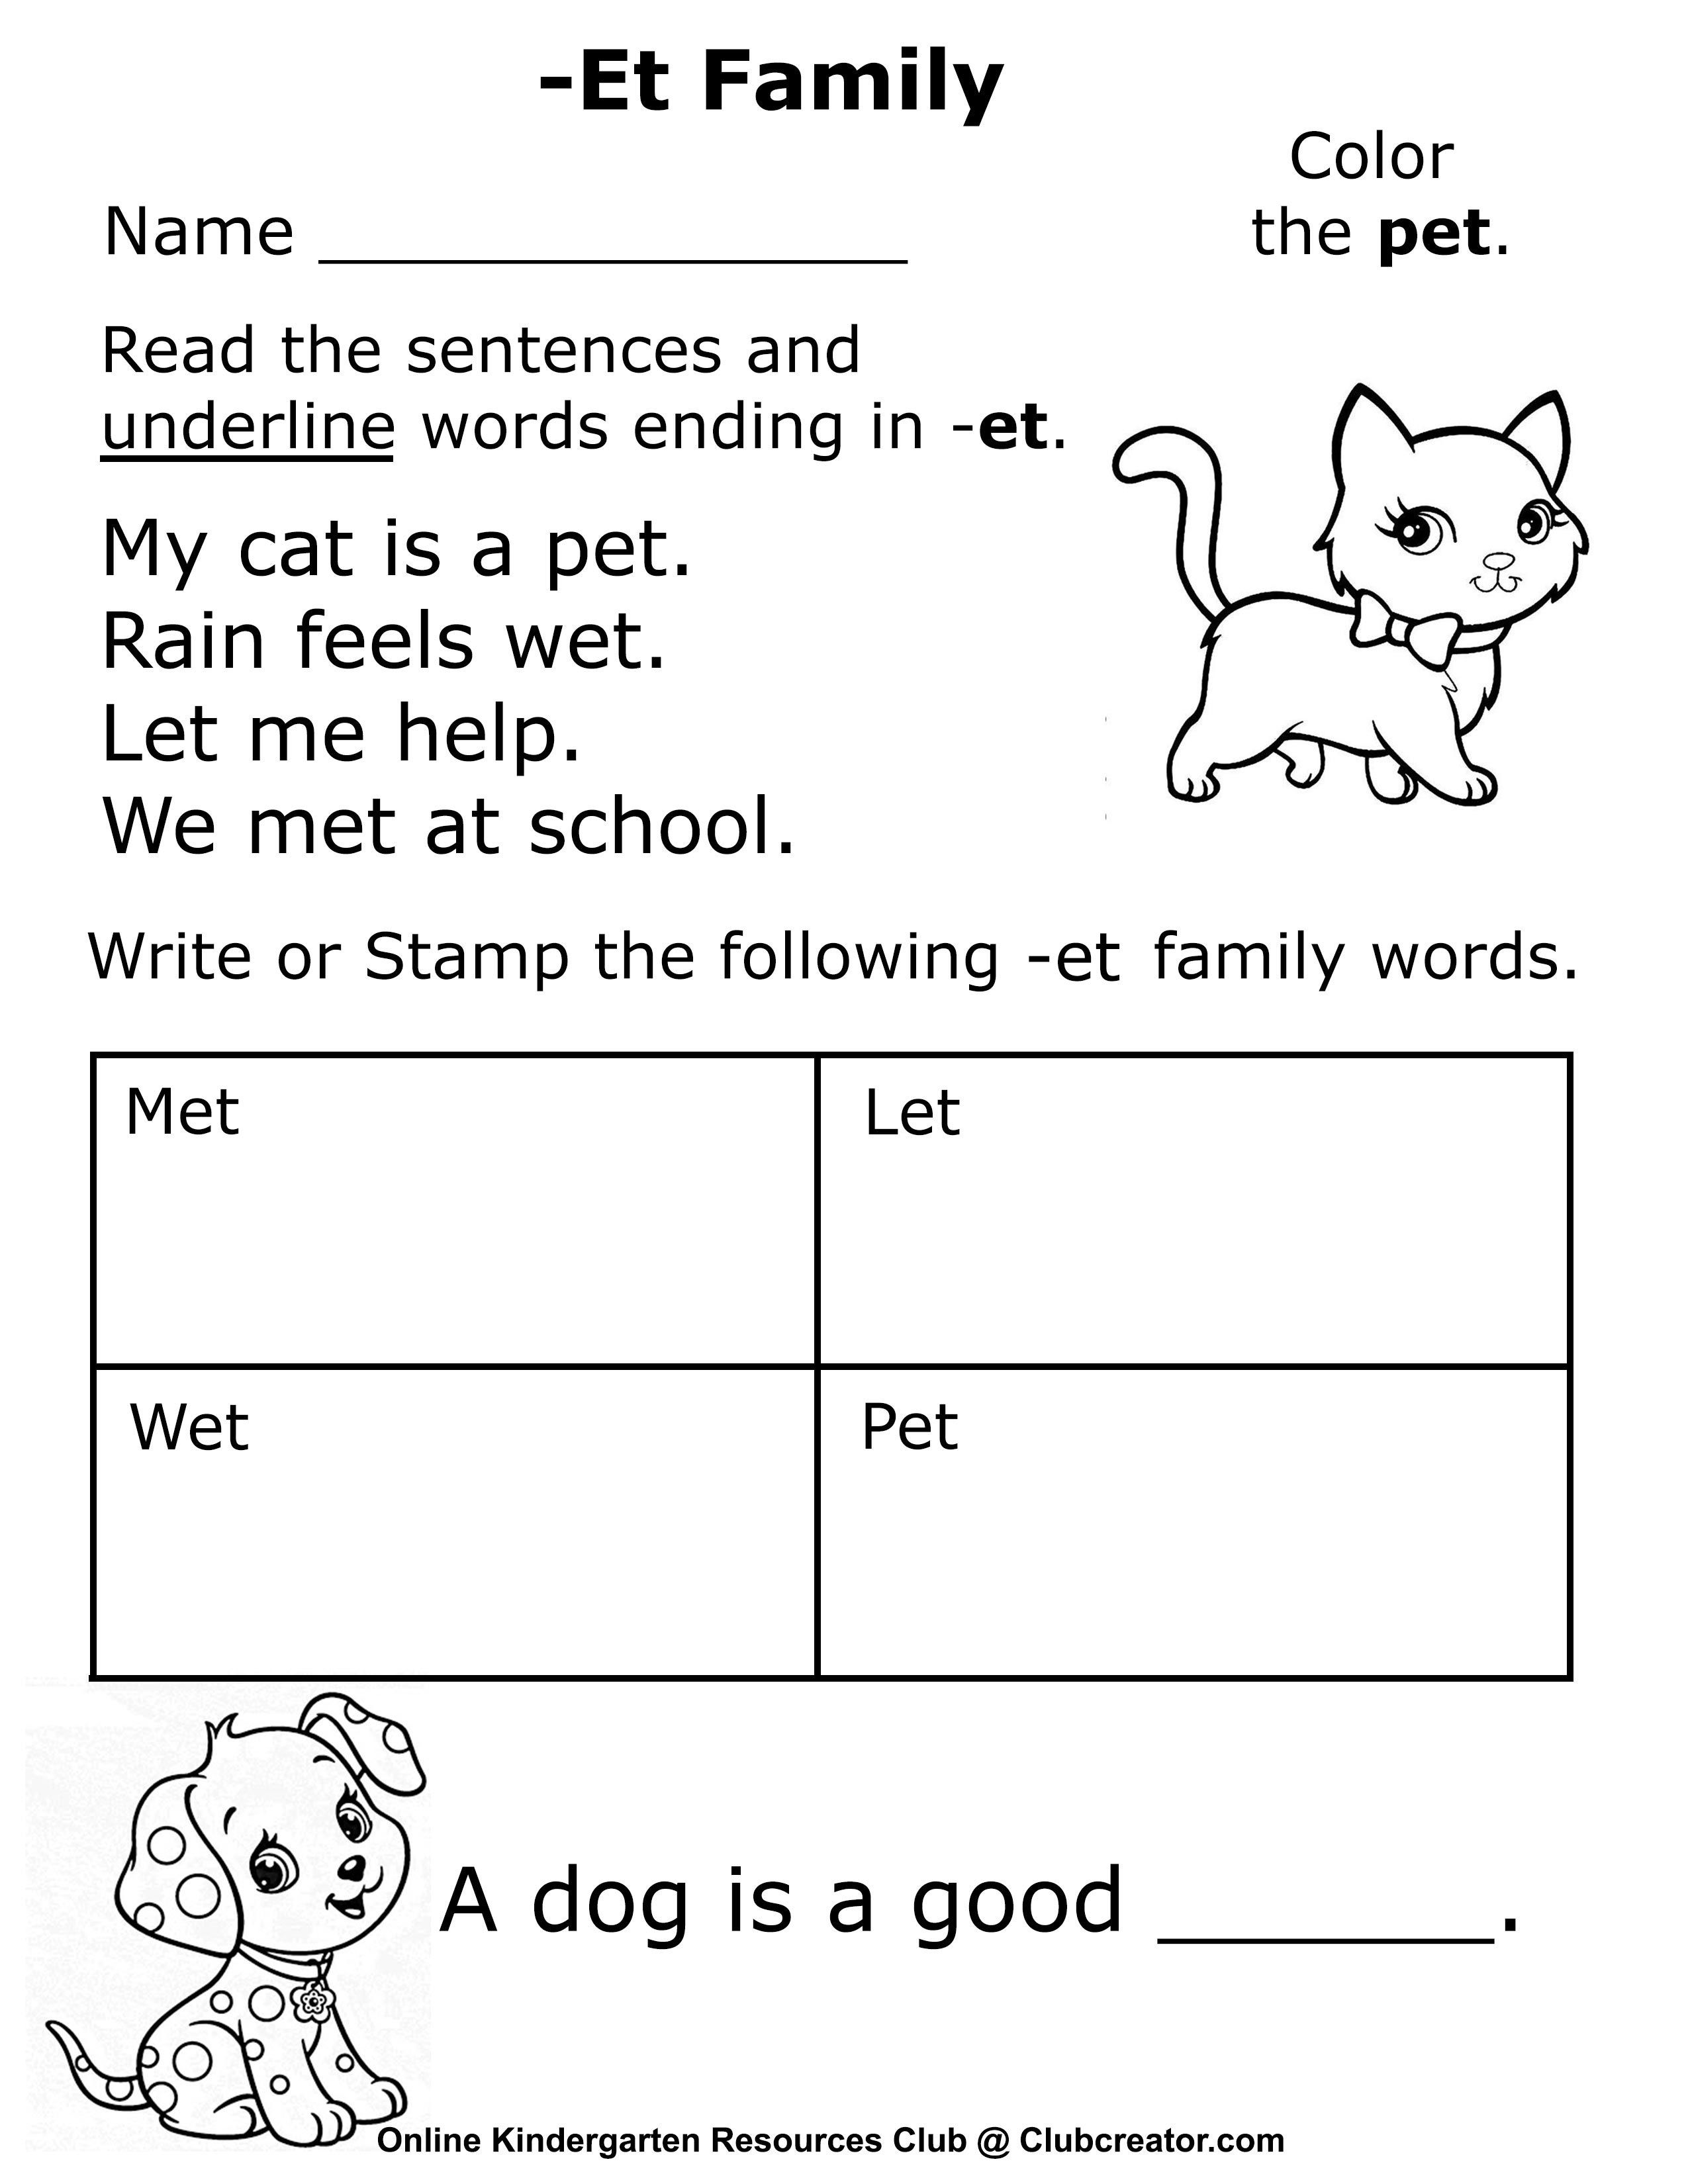 Pin On Homeschool Worksheets